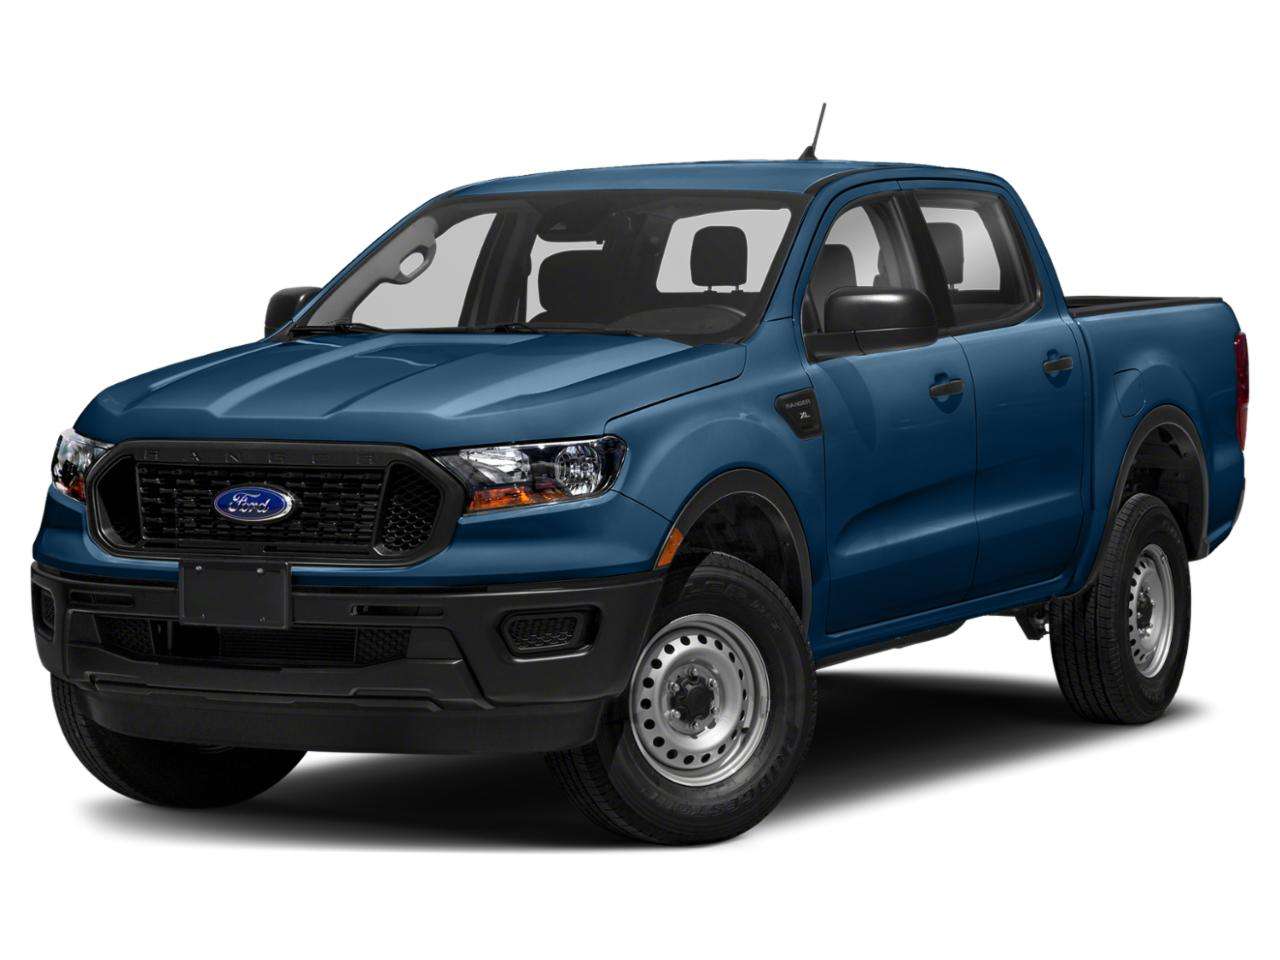 Lightning Blue Metallic 2019 Ford Ranger XL Crew Cab Pickup Durham NC